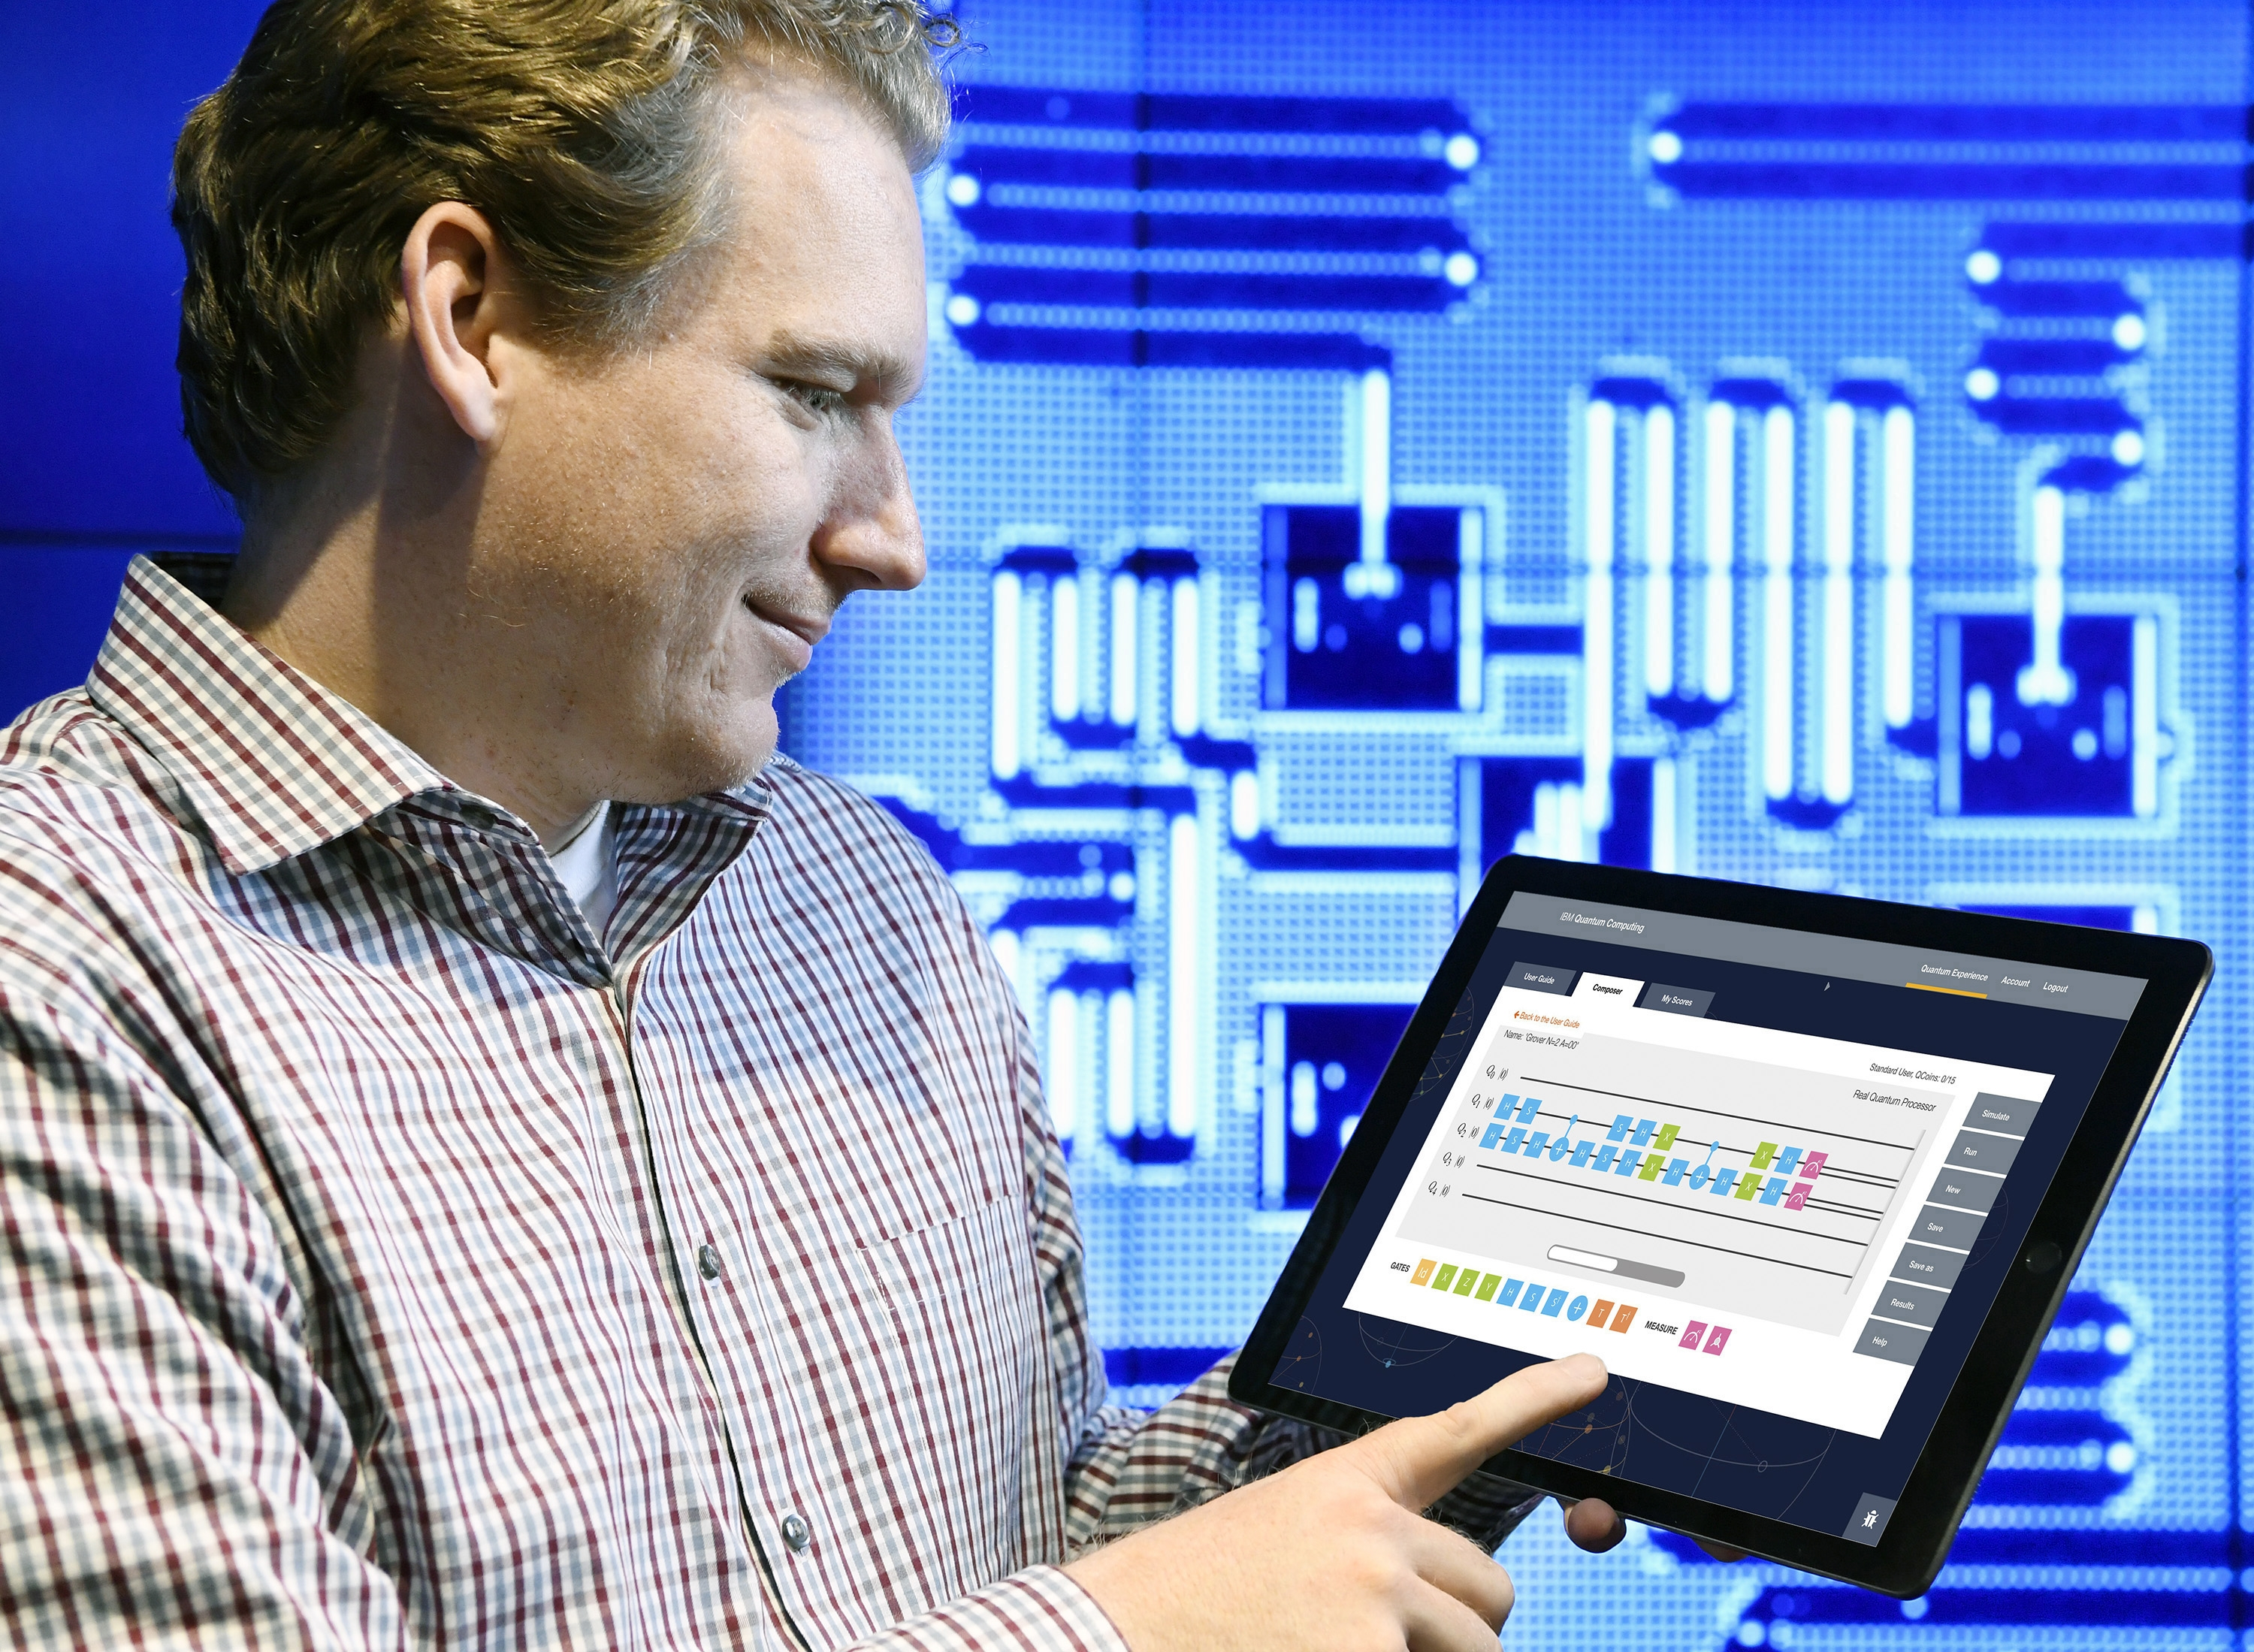 IBM Quantum Computing Scientist Jay Gambetta uses a tablet to interact with the IBM Quantum Experience, May 4, 2016, Yorktown, N.Y.